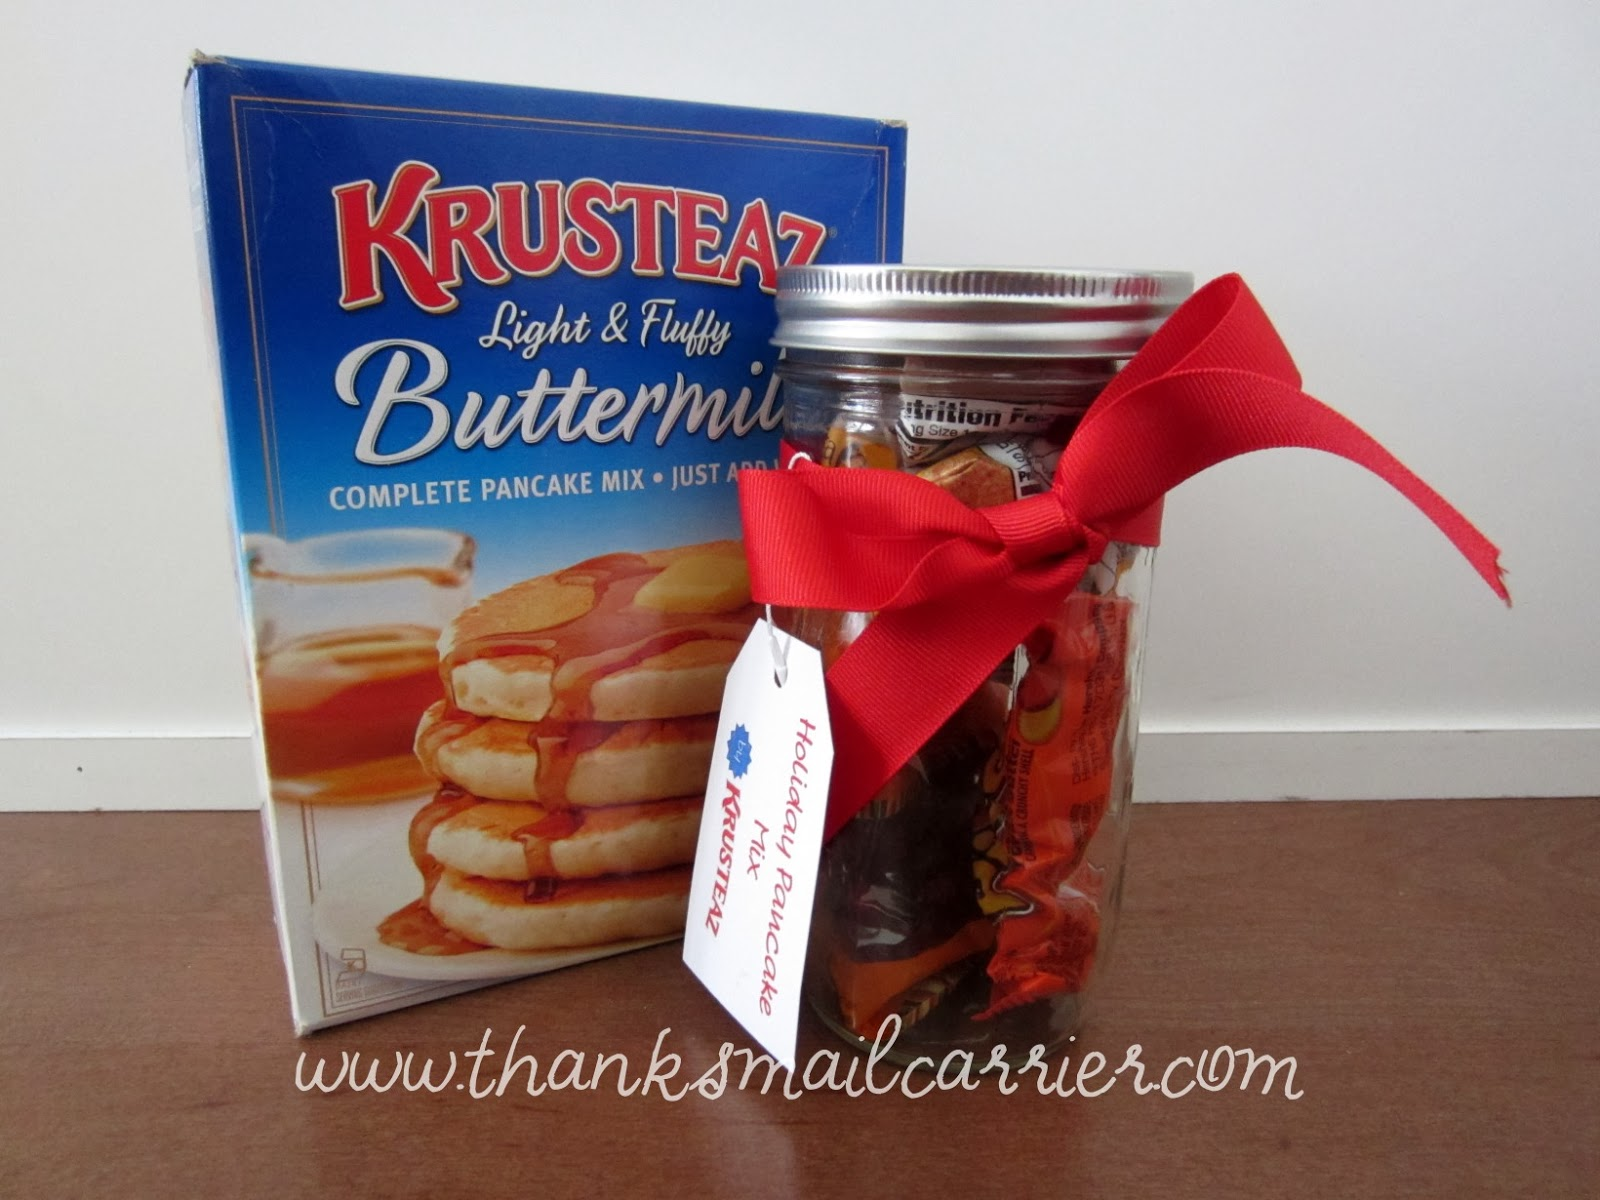 Krusteaz pancake mix